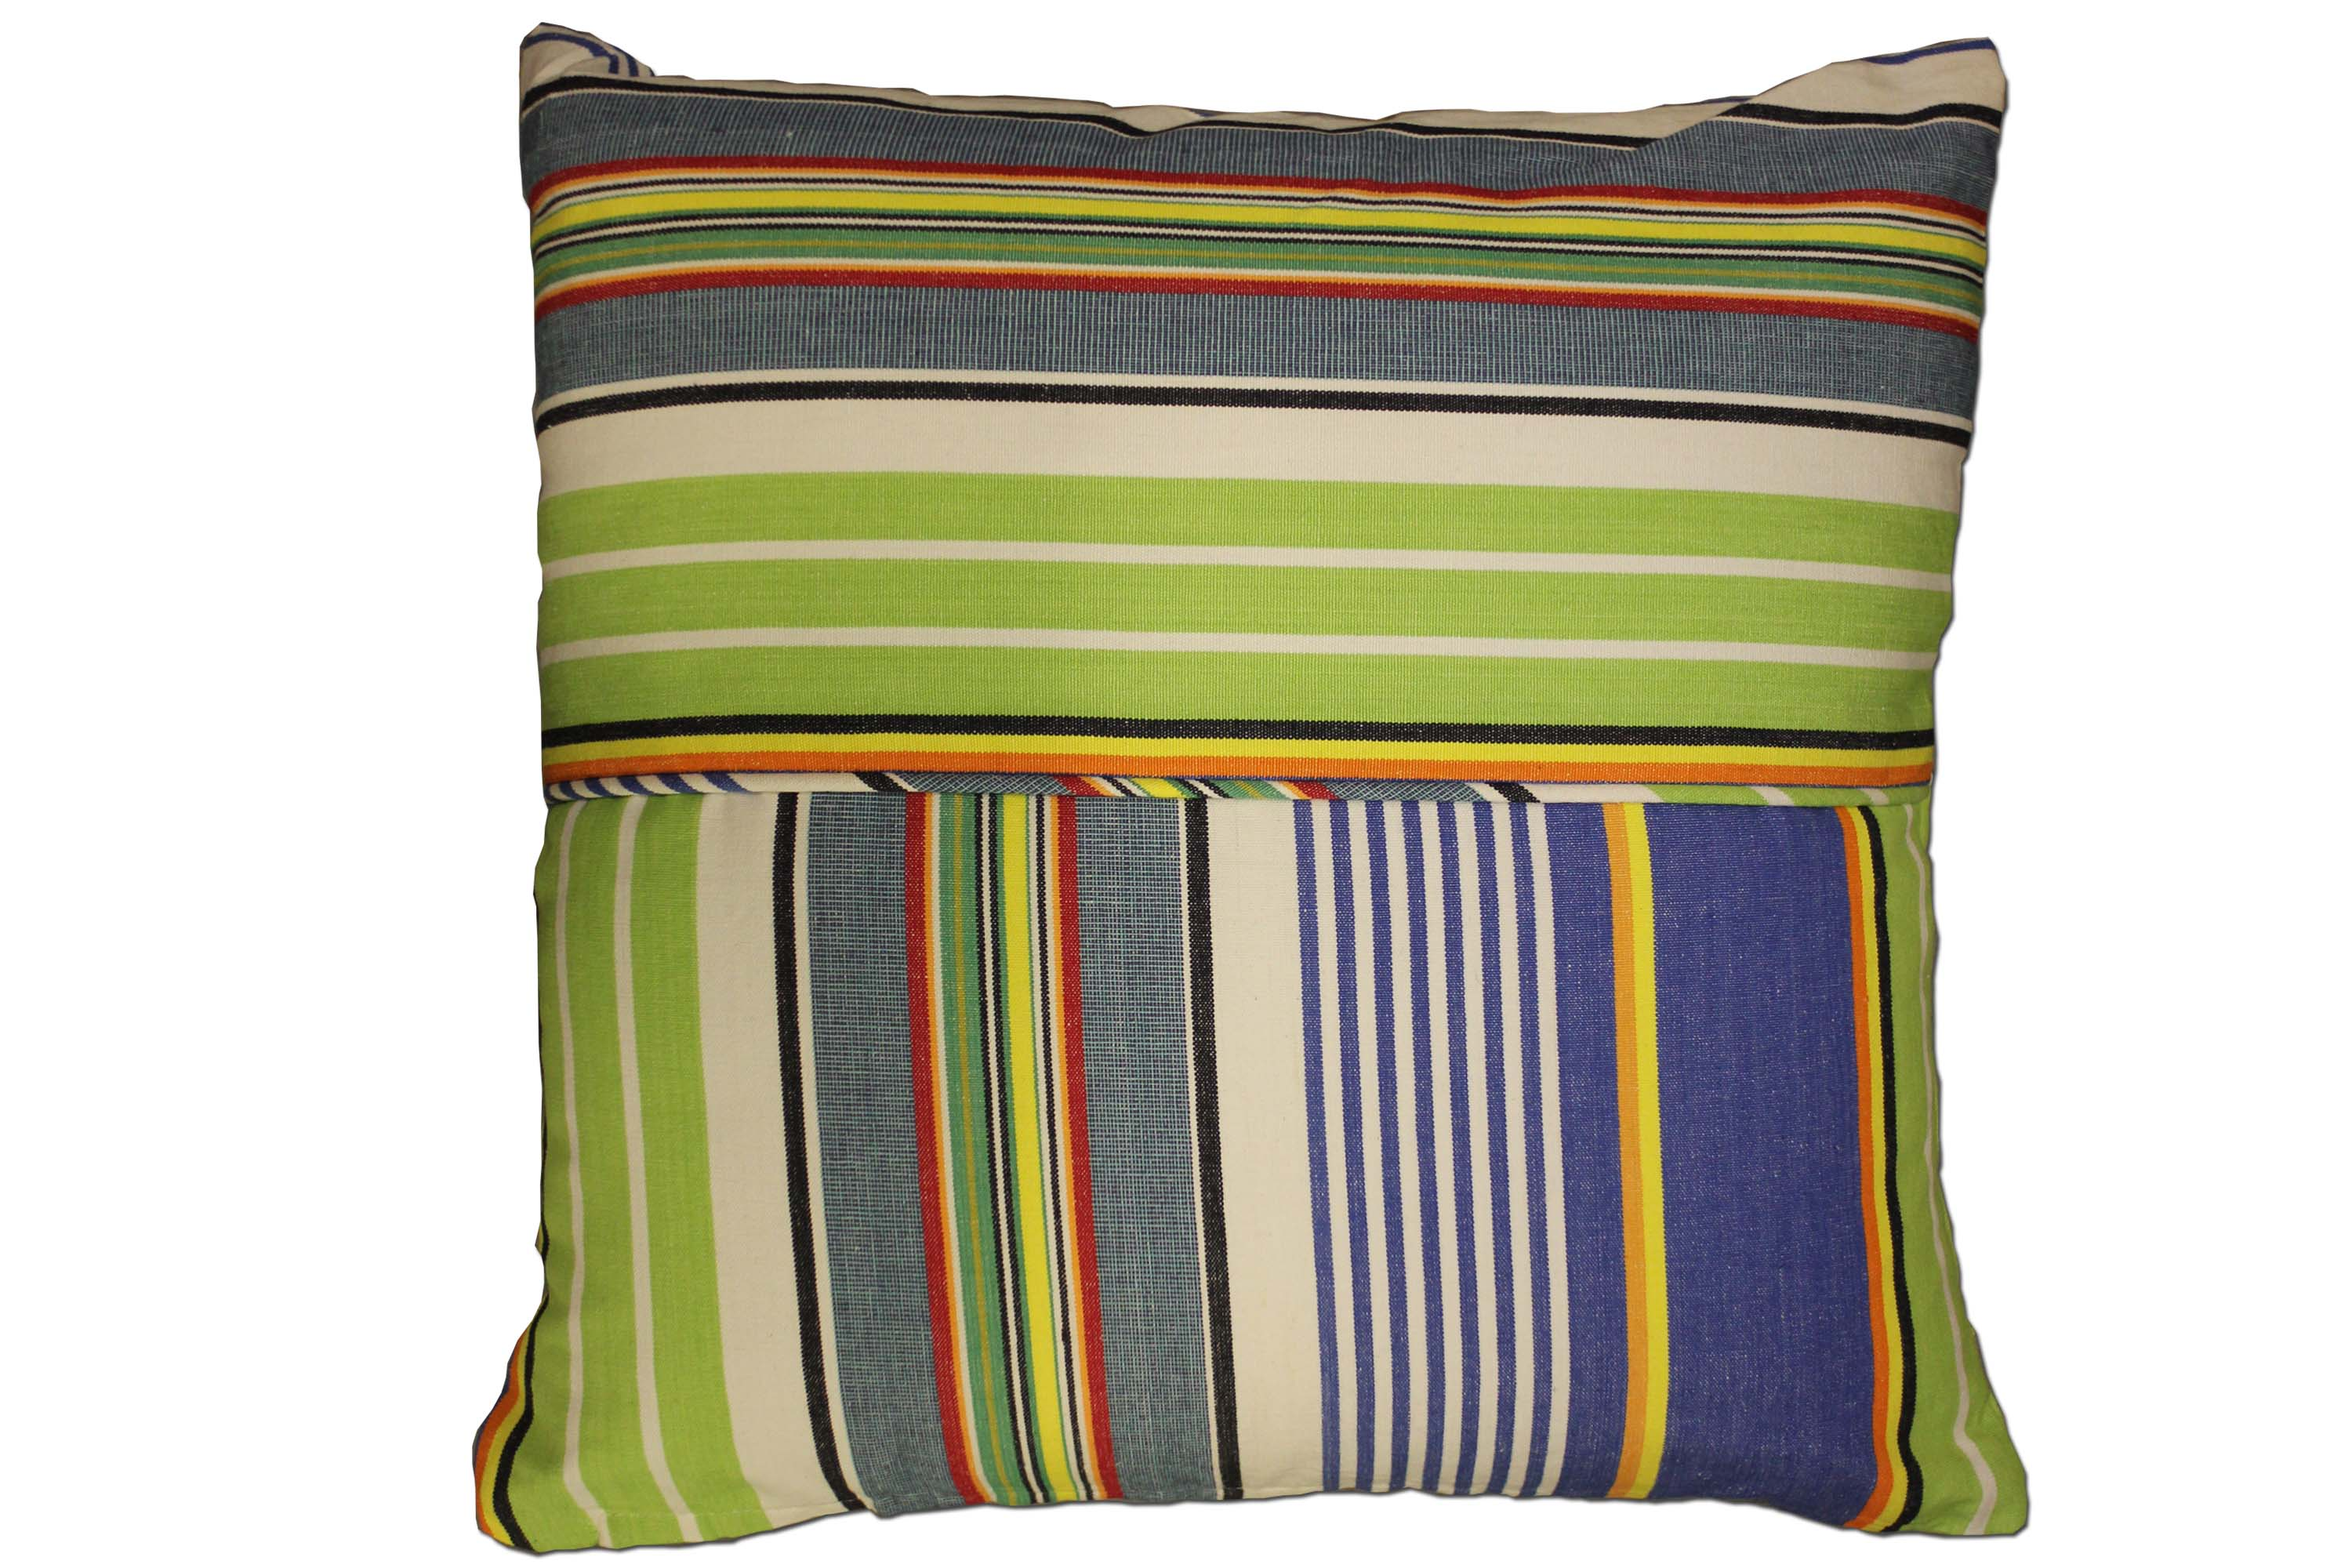 Bright Blue Striped Piped Cushions | Square Piped Cushions Bright Blue  Denim Blue  Lime Green